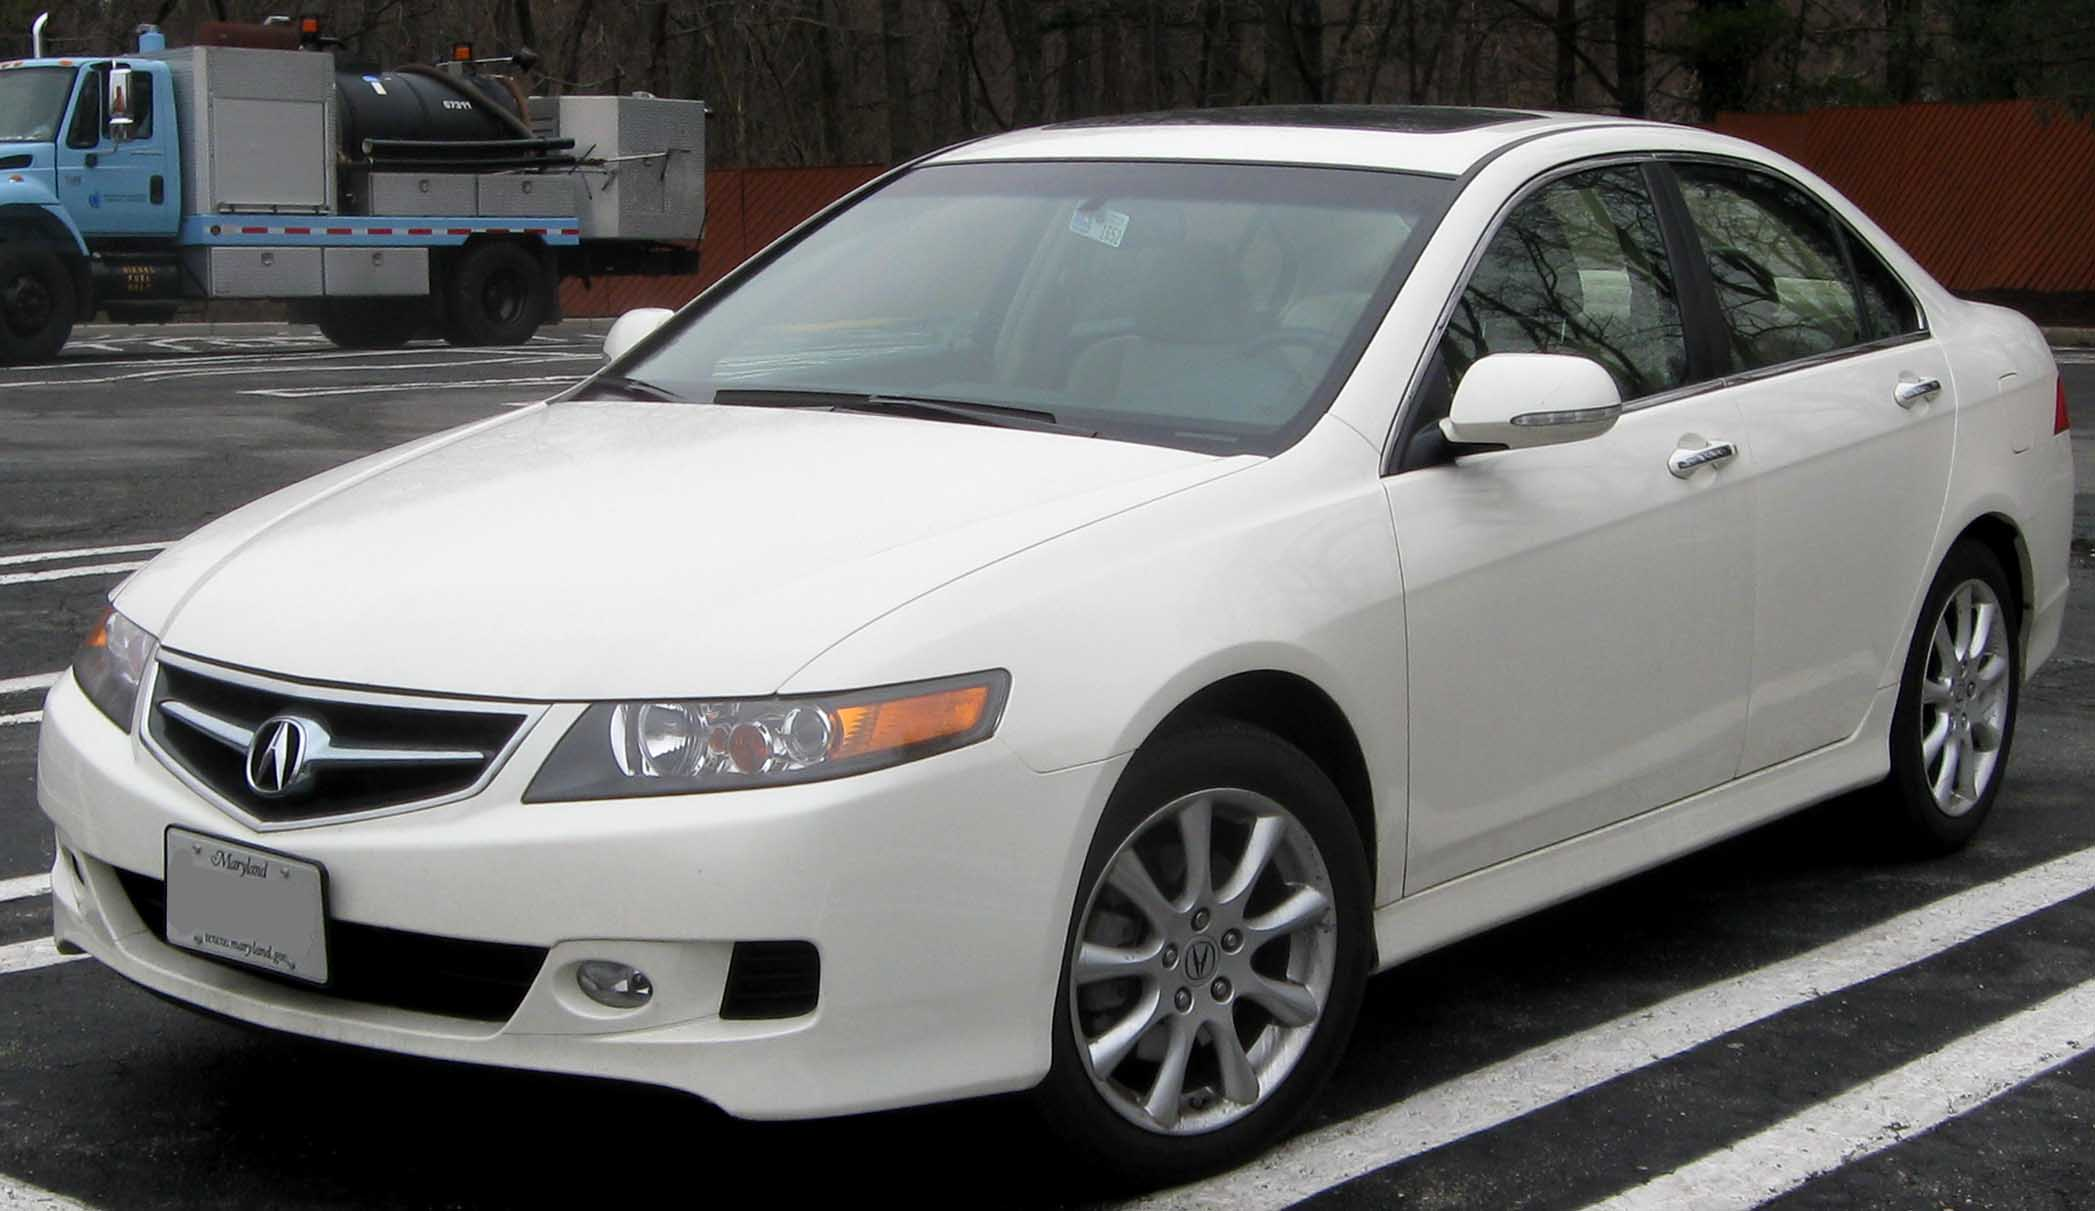 2008 acura tsx information and photos zombiedrive